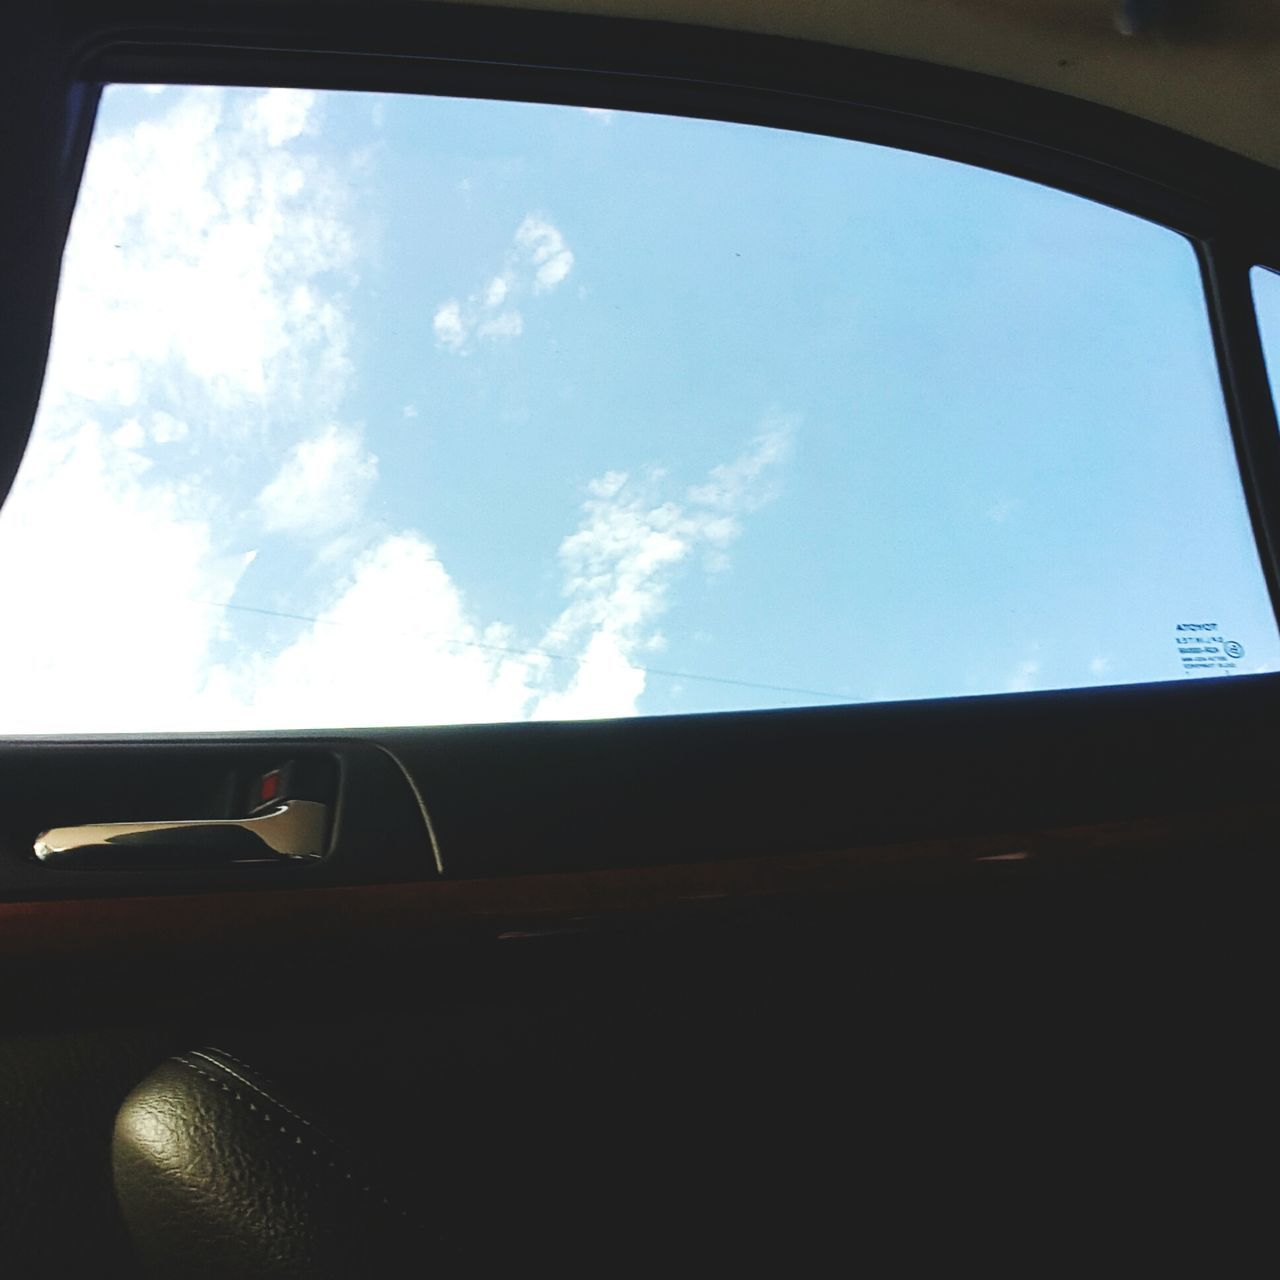 vehicle interior, car, transportation, car interior, mode of transport, land vehicle, sky, cloud - sky, side-view mirror, no people, day, vehicle part, vehicle seat